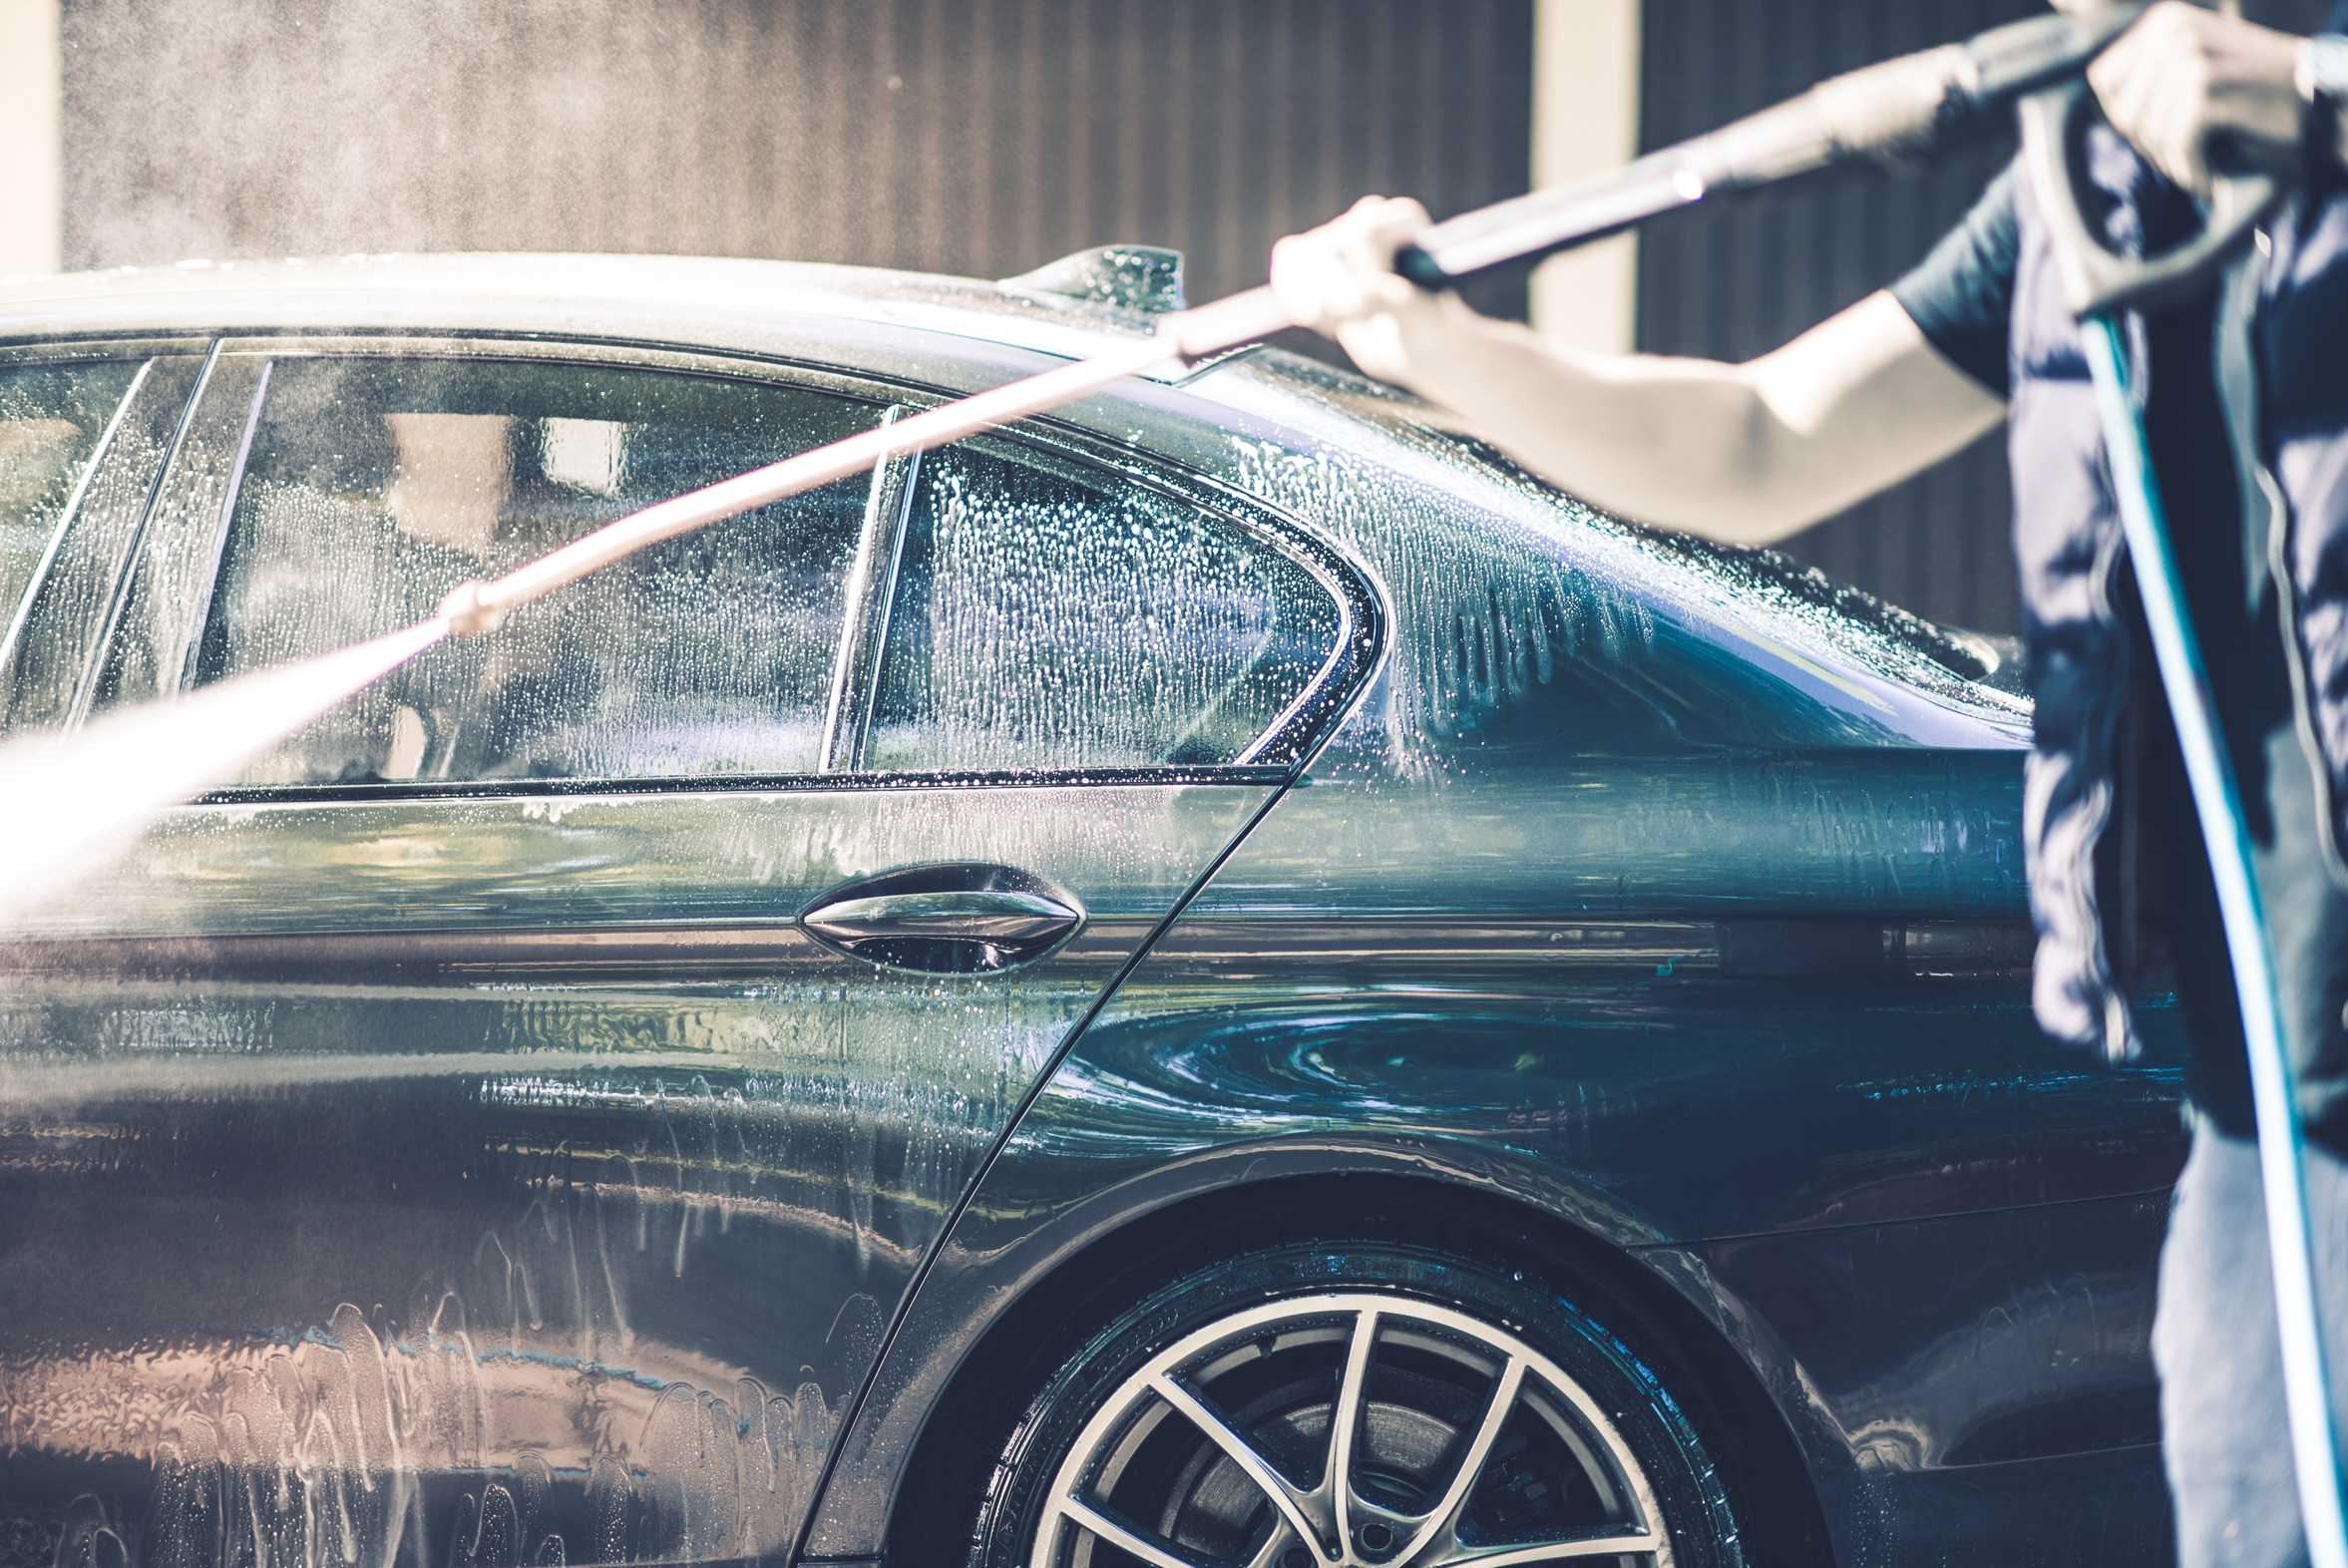 WASHING YOUR CAR WITH A HIGH PRESSURE WASHER: TIPS AND PLUSES